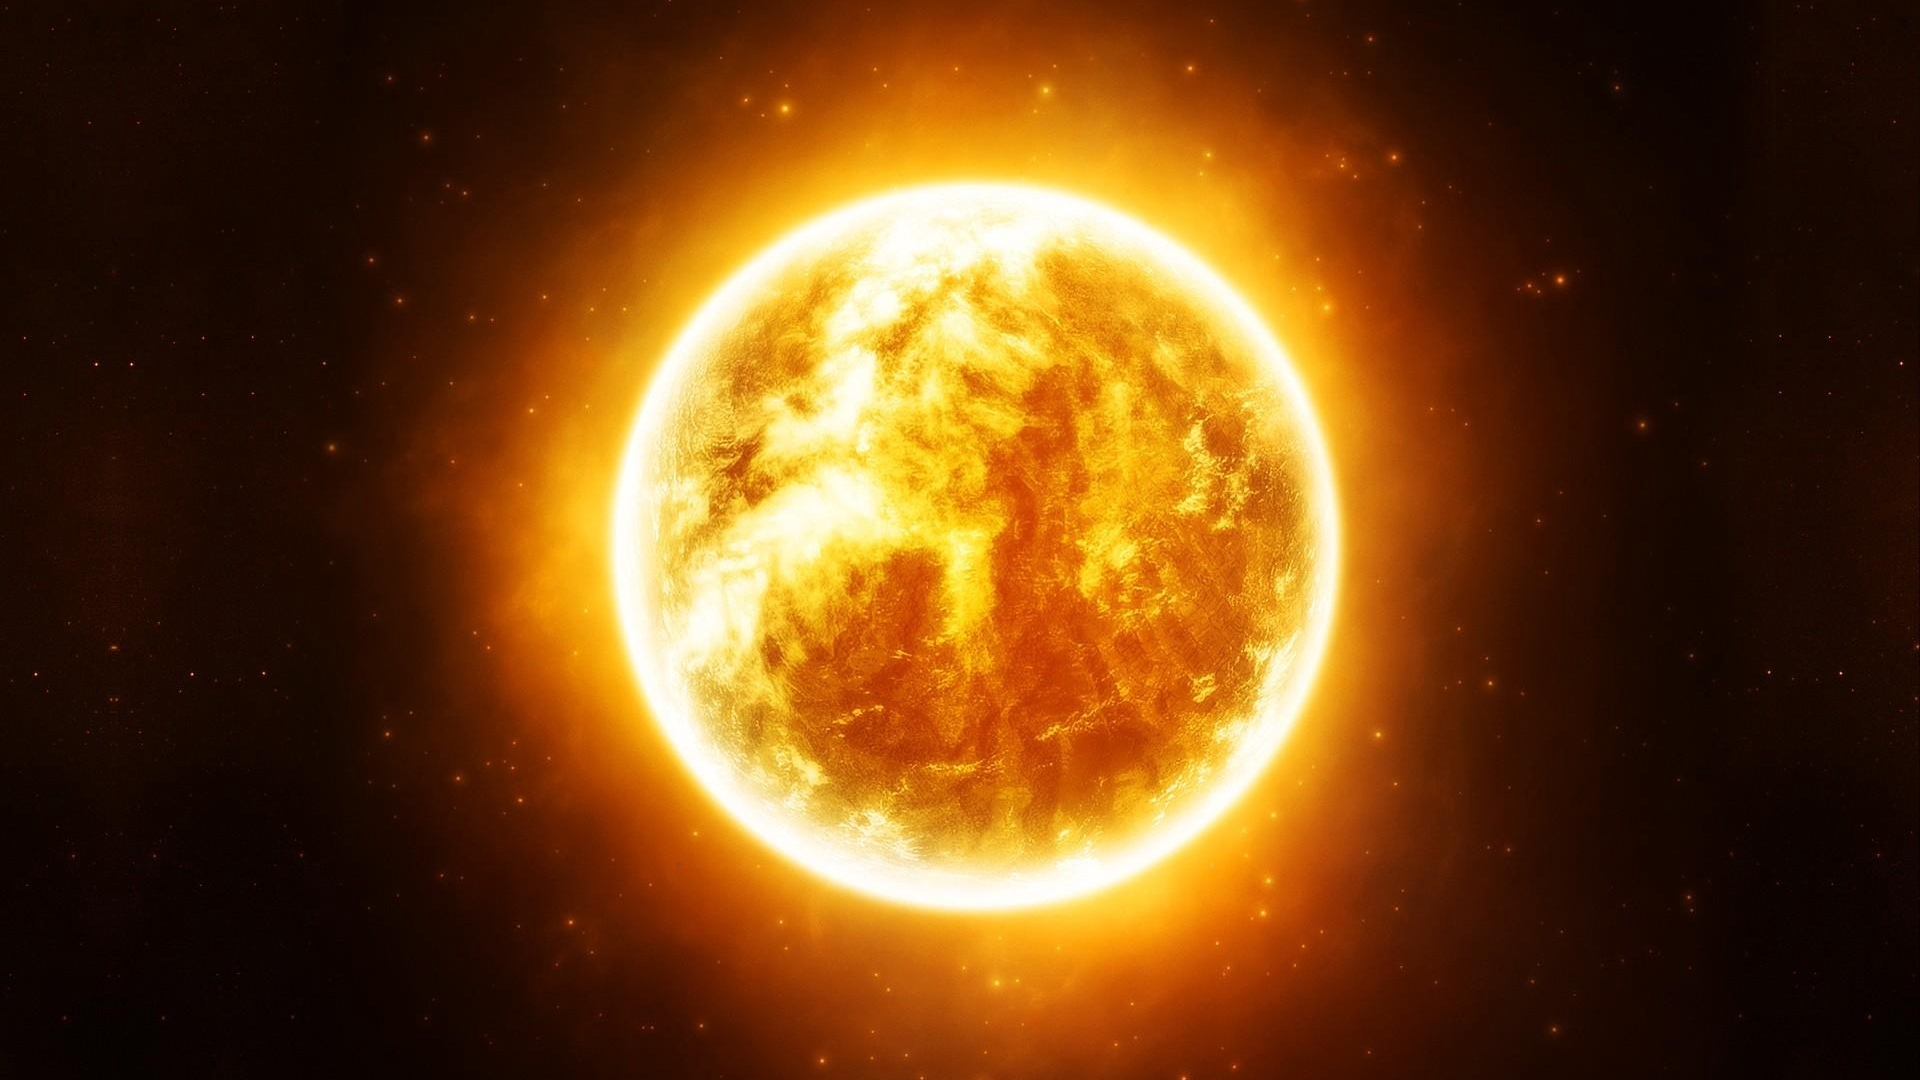 Wallpaper Sun, Stars, Space, Light - High Quality Picture Of The Sun - HD Wallpaper